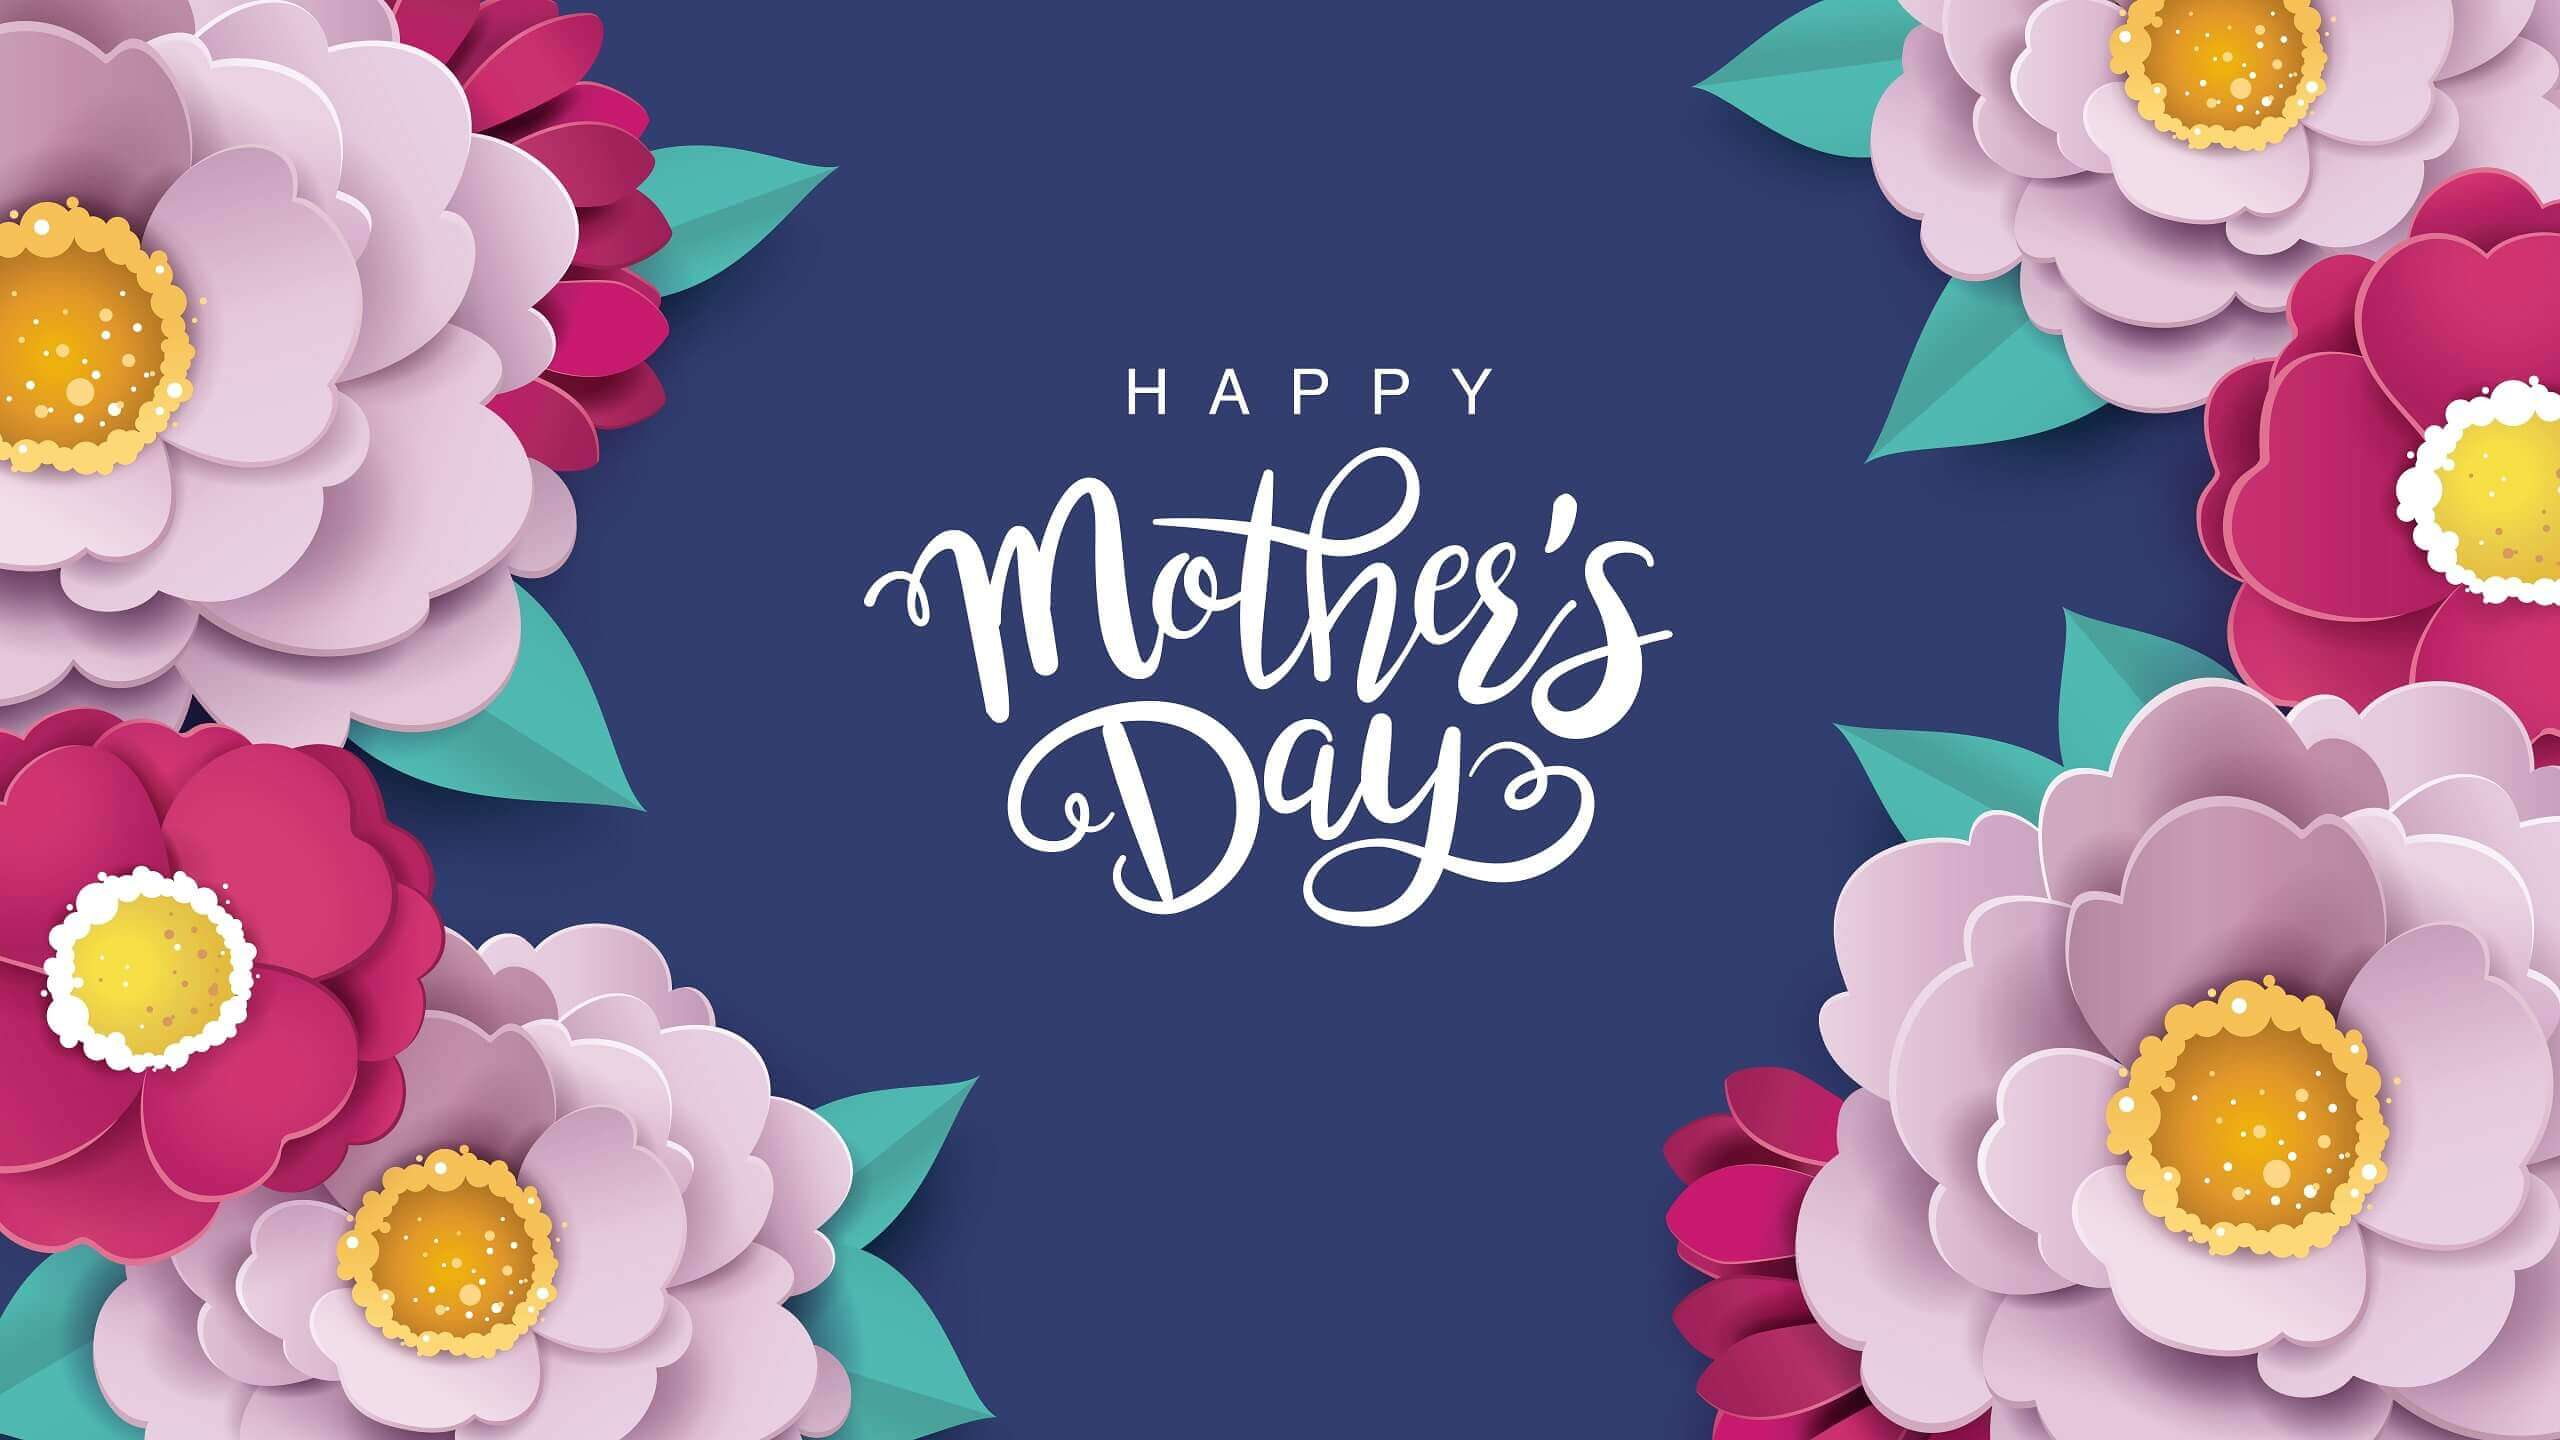 Happy mothers day image 2560x1440